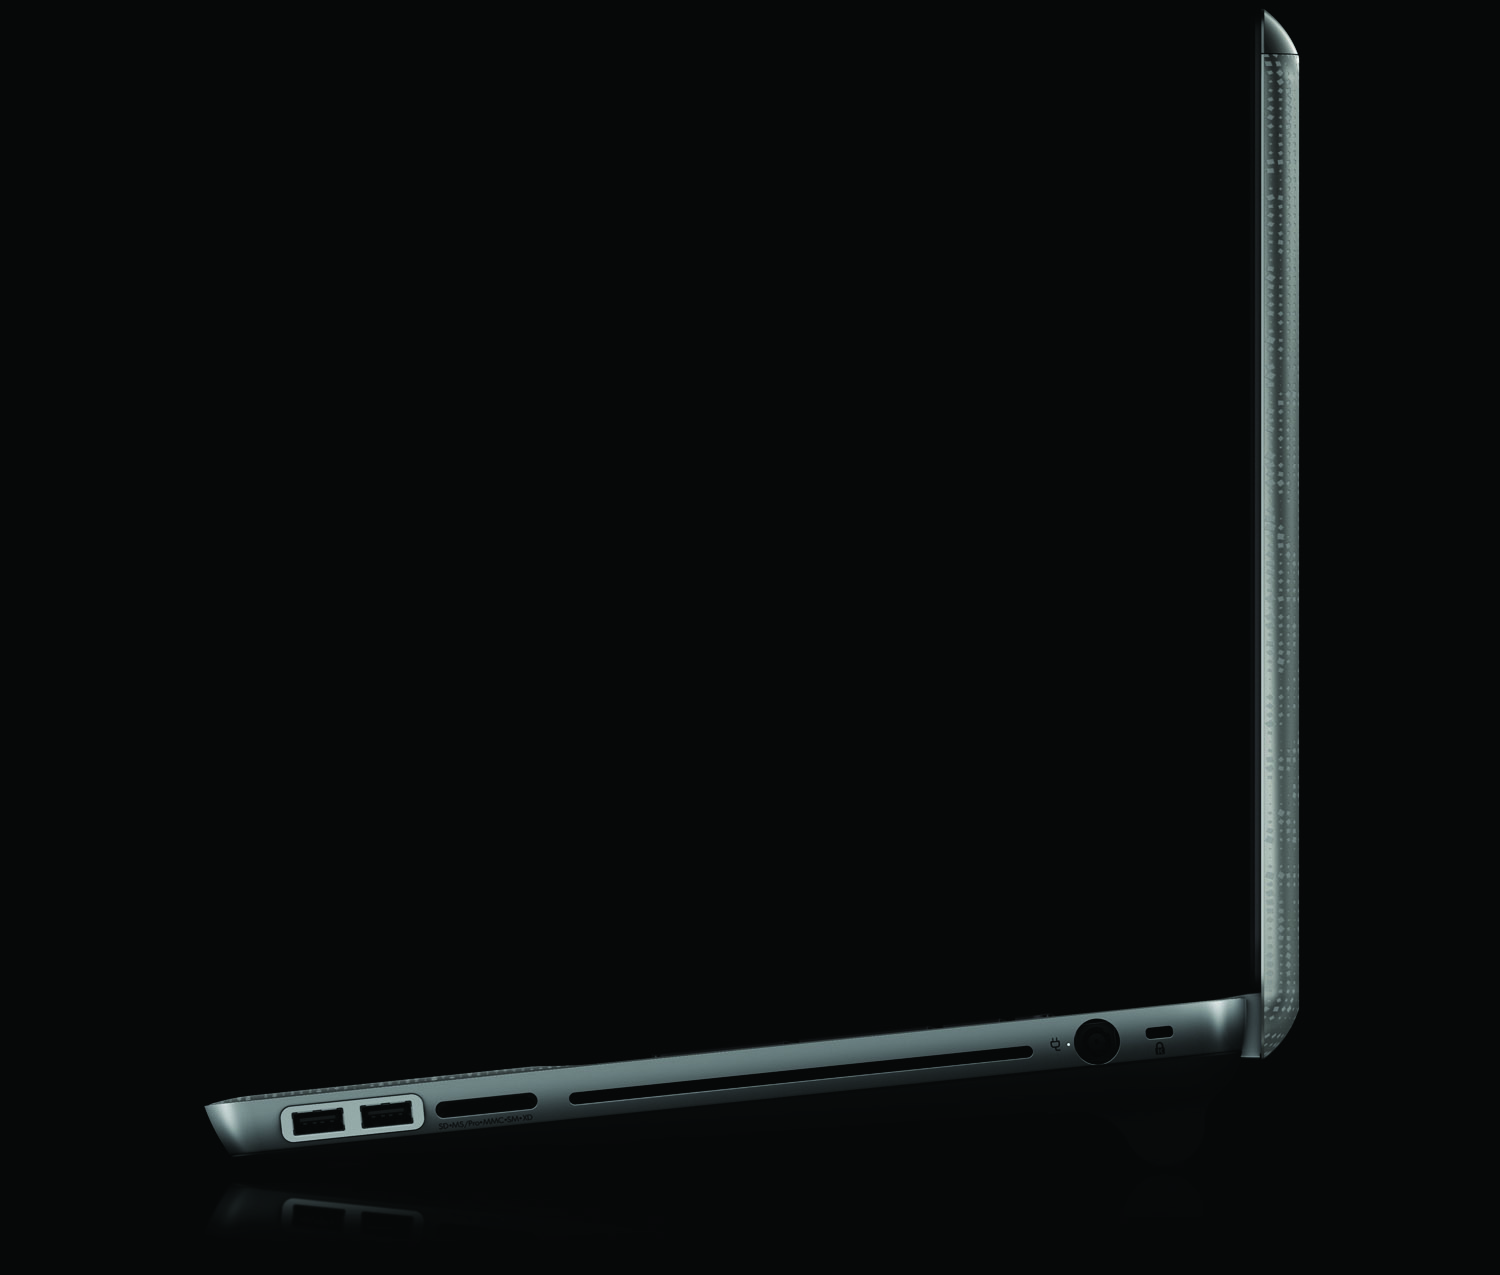 HP Envy 17, left profile with battery on black